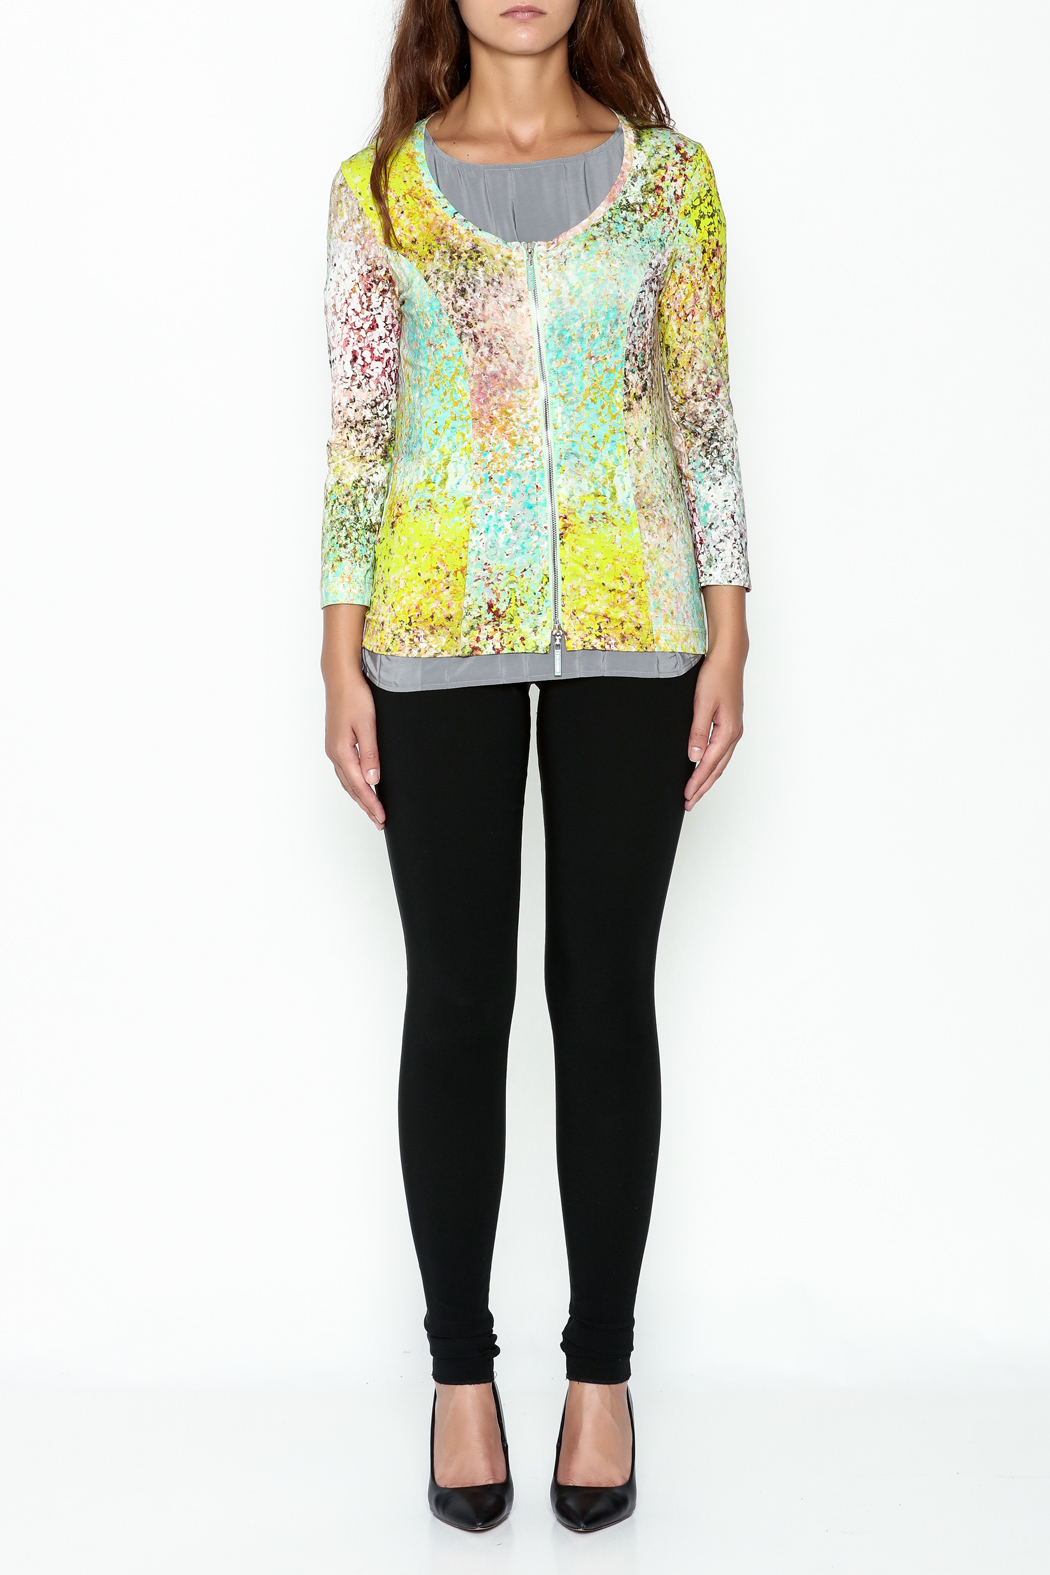 Eva & Claudi Monet Zip Top - Front Full Image